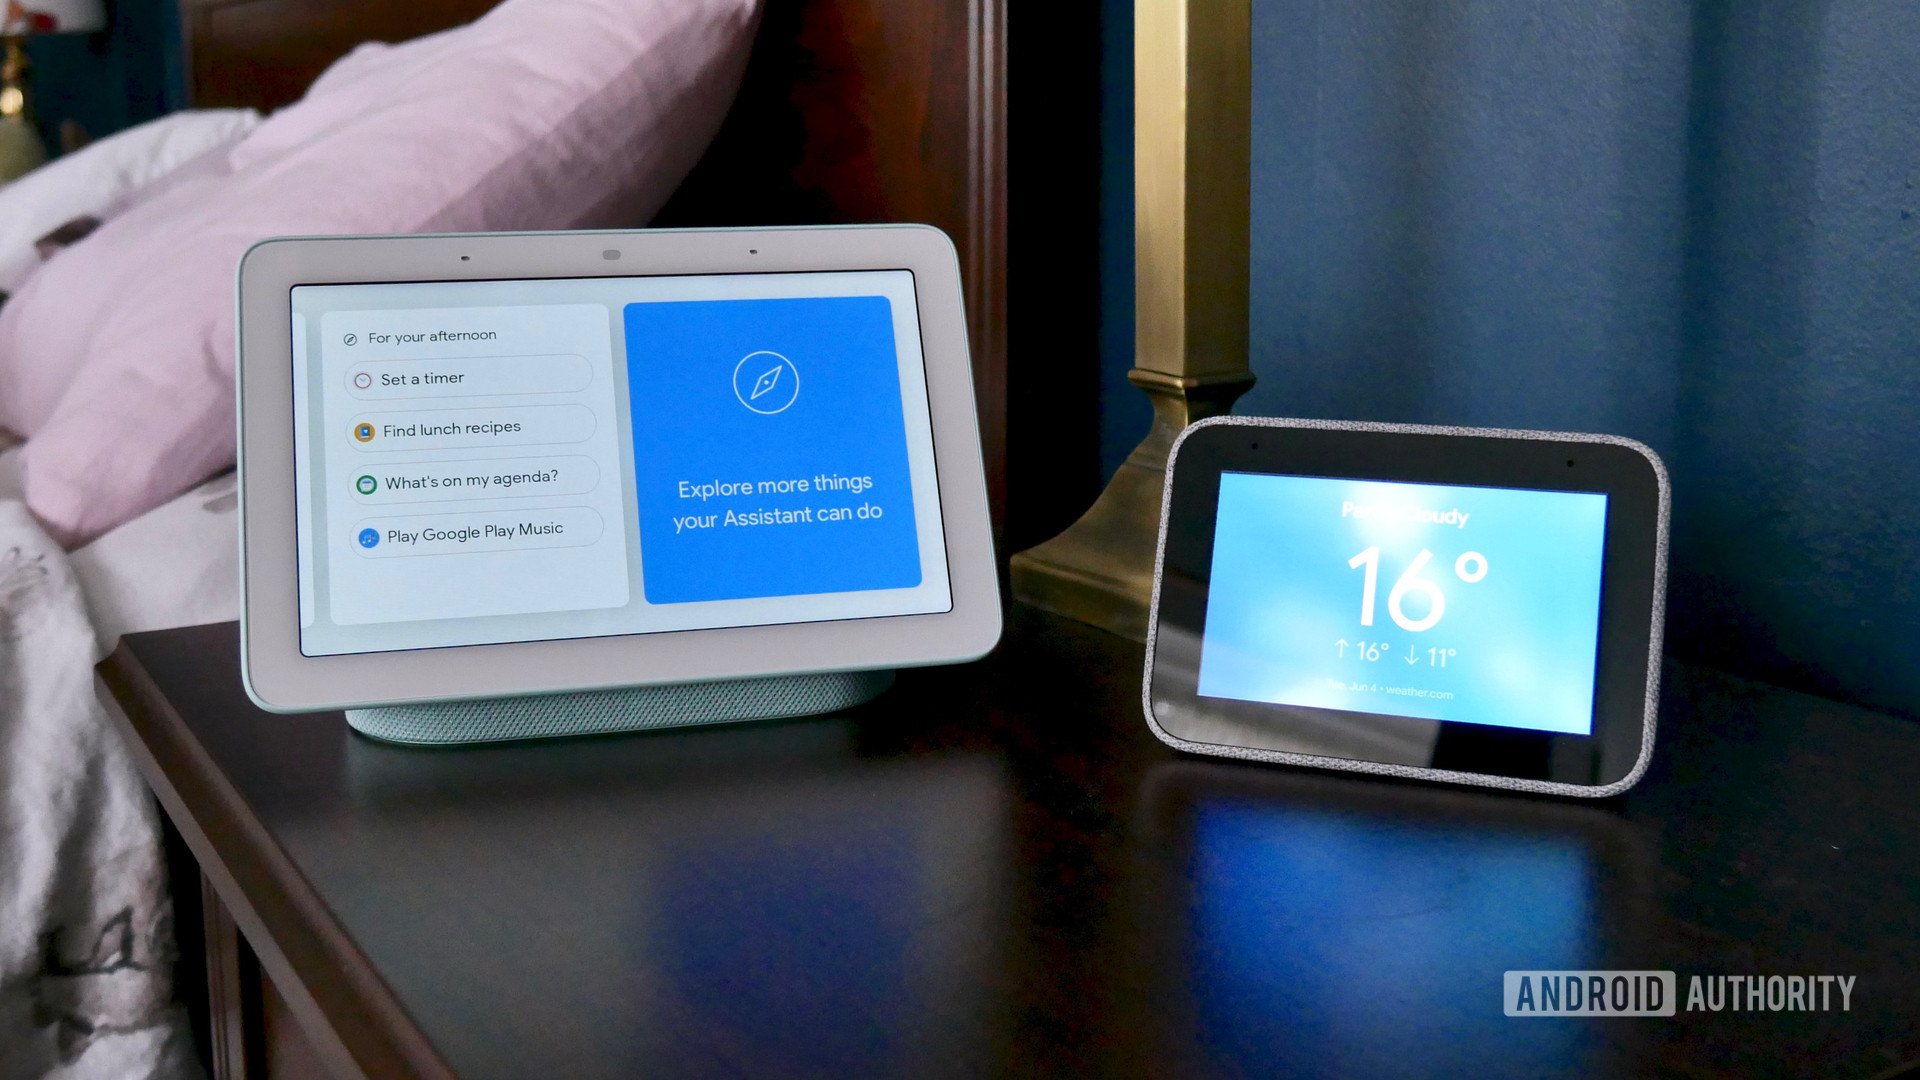 Google has announced a smart home alliance with Amazon and Apple.